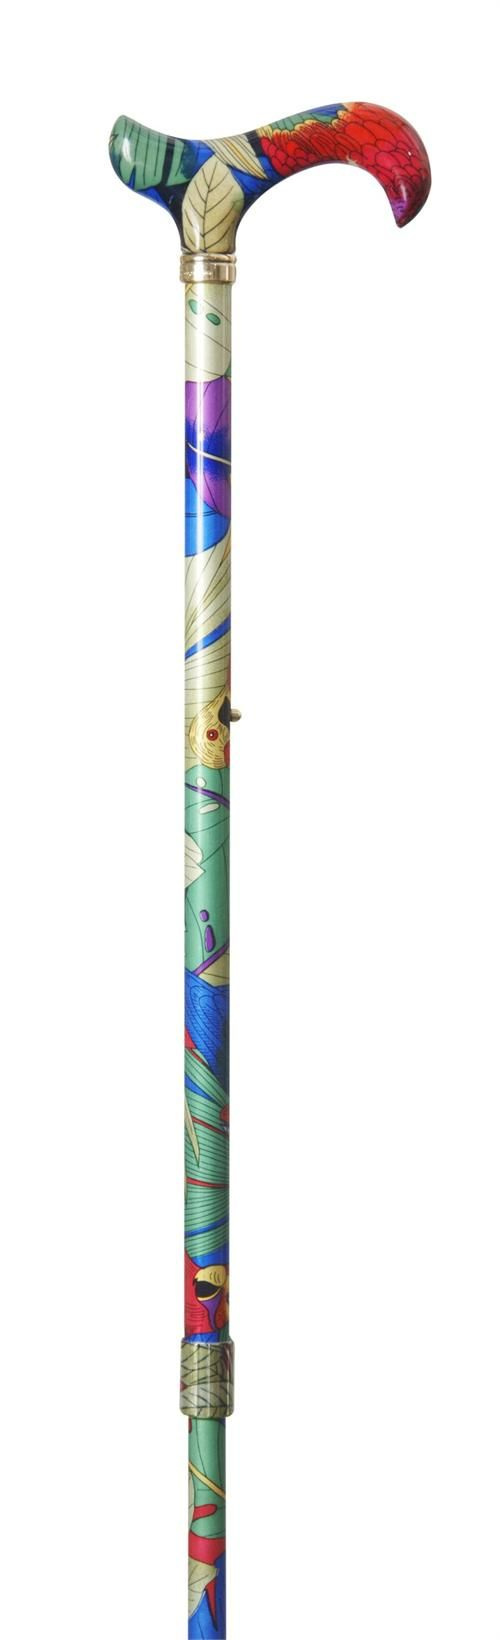 Fashion Derby in Tropicana Parrot Tropical Parrot is a glamorous stick for the…